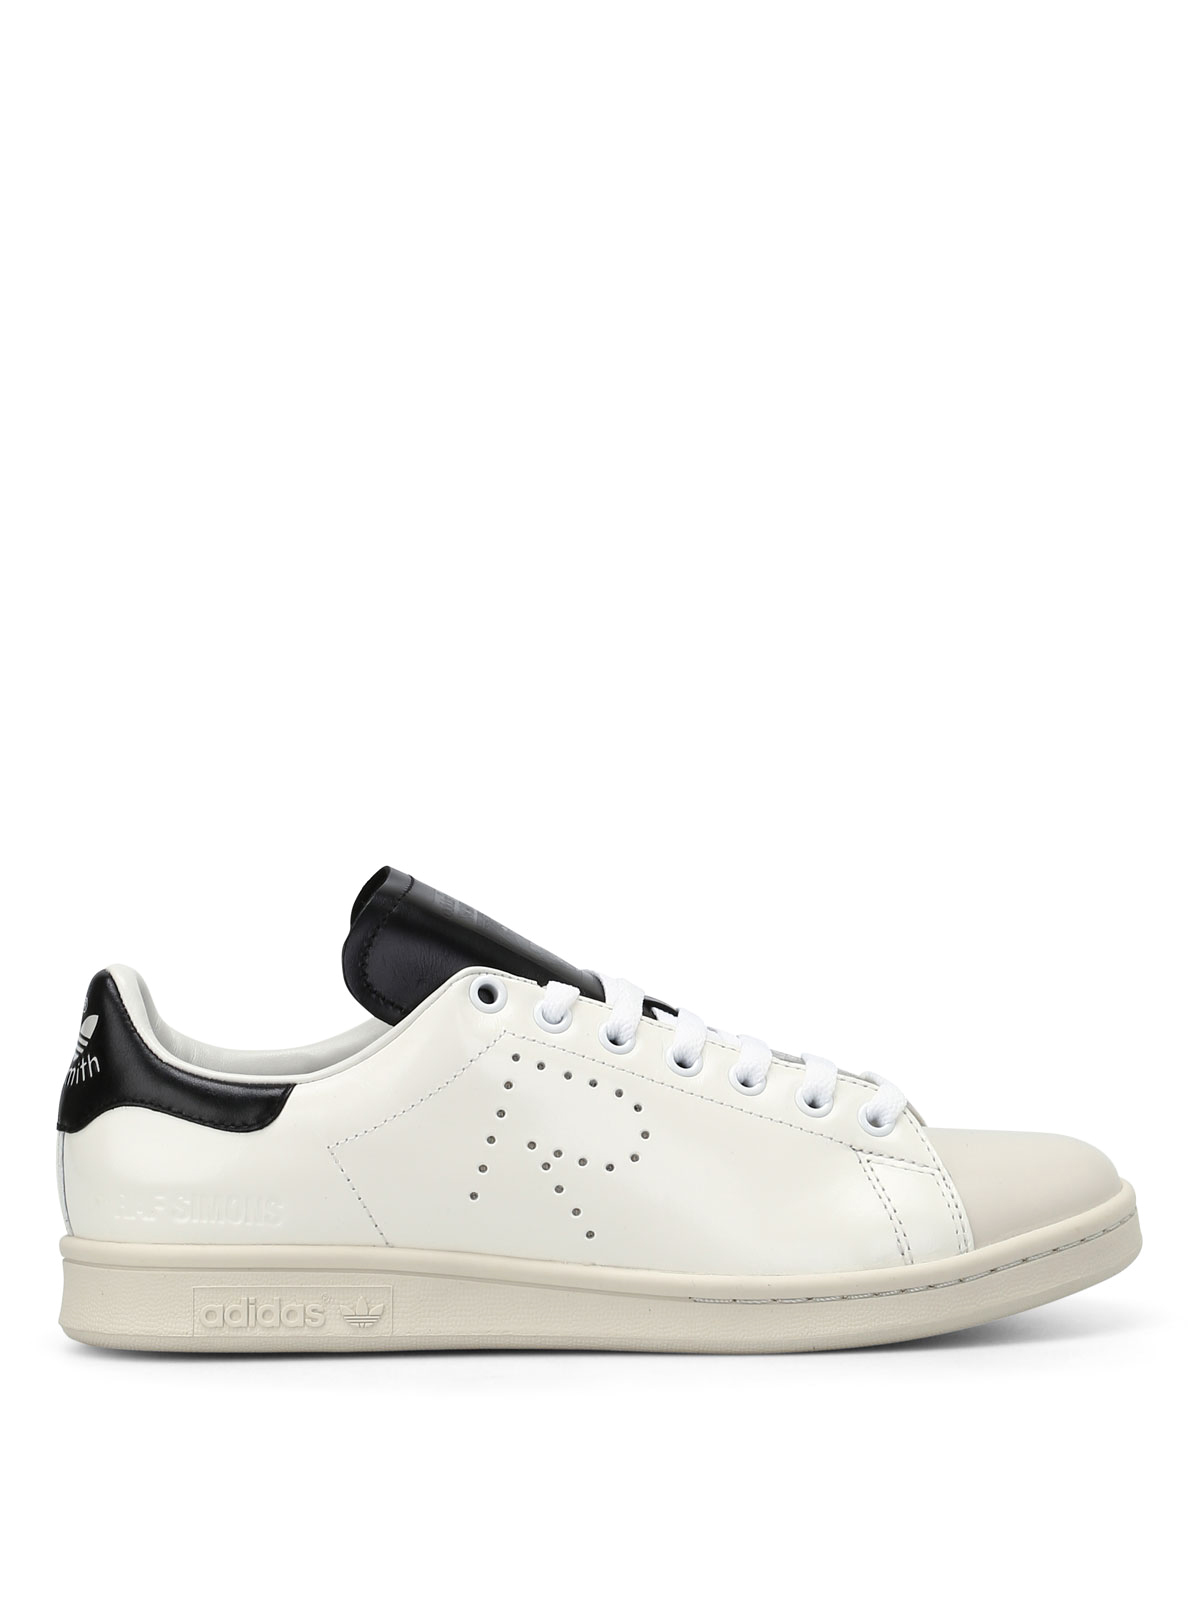 20cf5d502f1e Raf Simons Adidas - Stan Smith leather sneakers - trainers ...